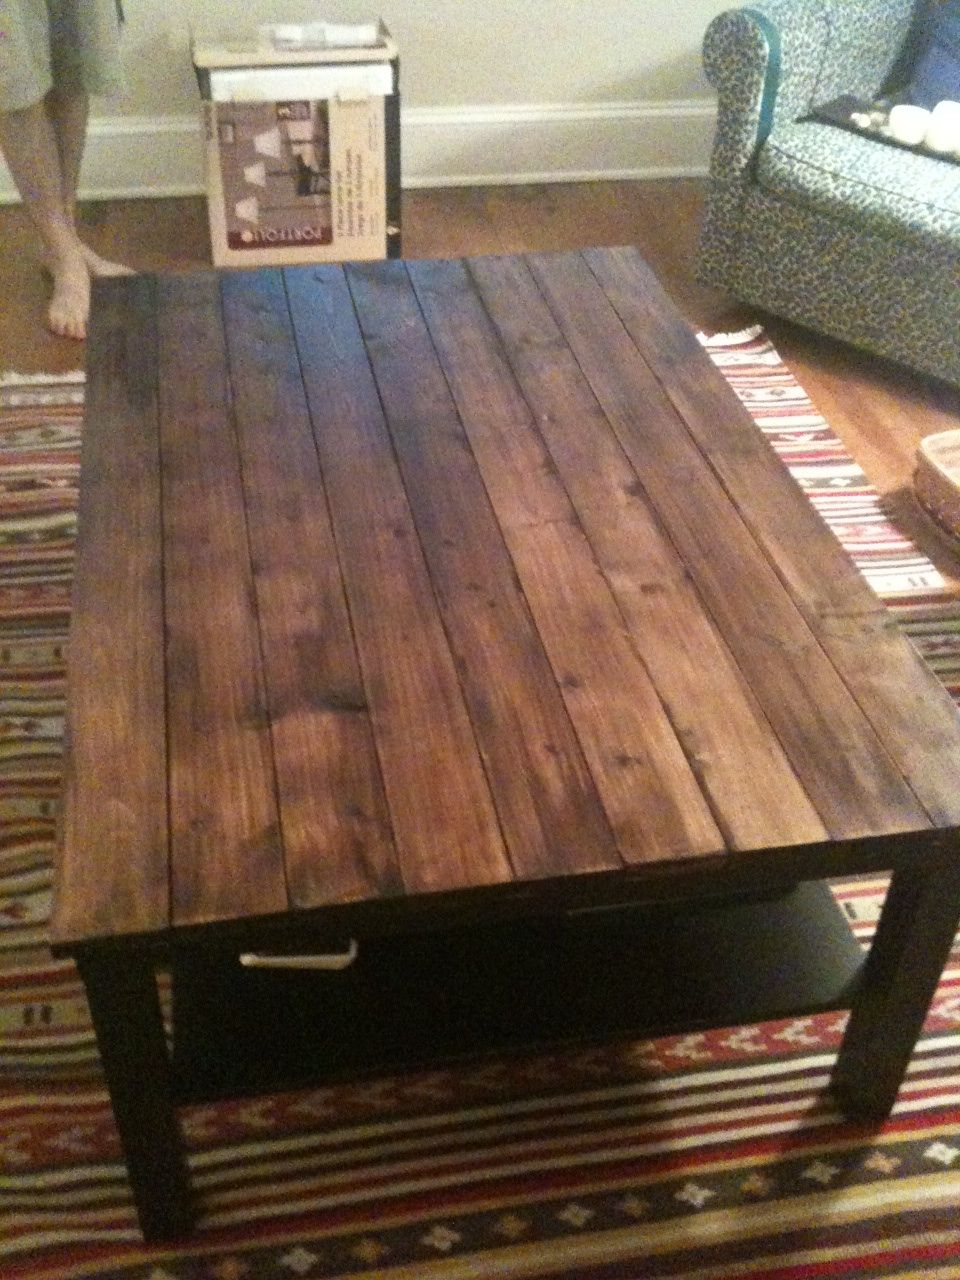 Swell Diy Rustic Wood Coffee Table Makeover From An Ikea Coffee Interior Design Ideas Truasarkarijobsexamcom